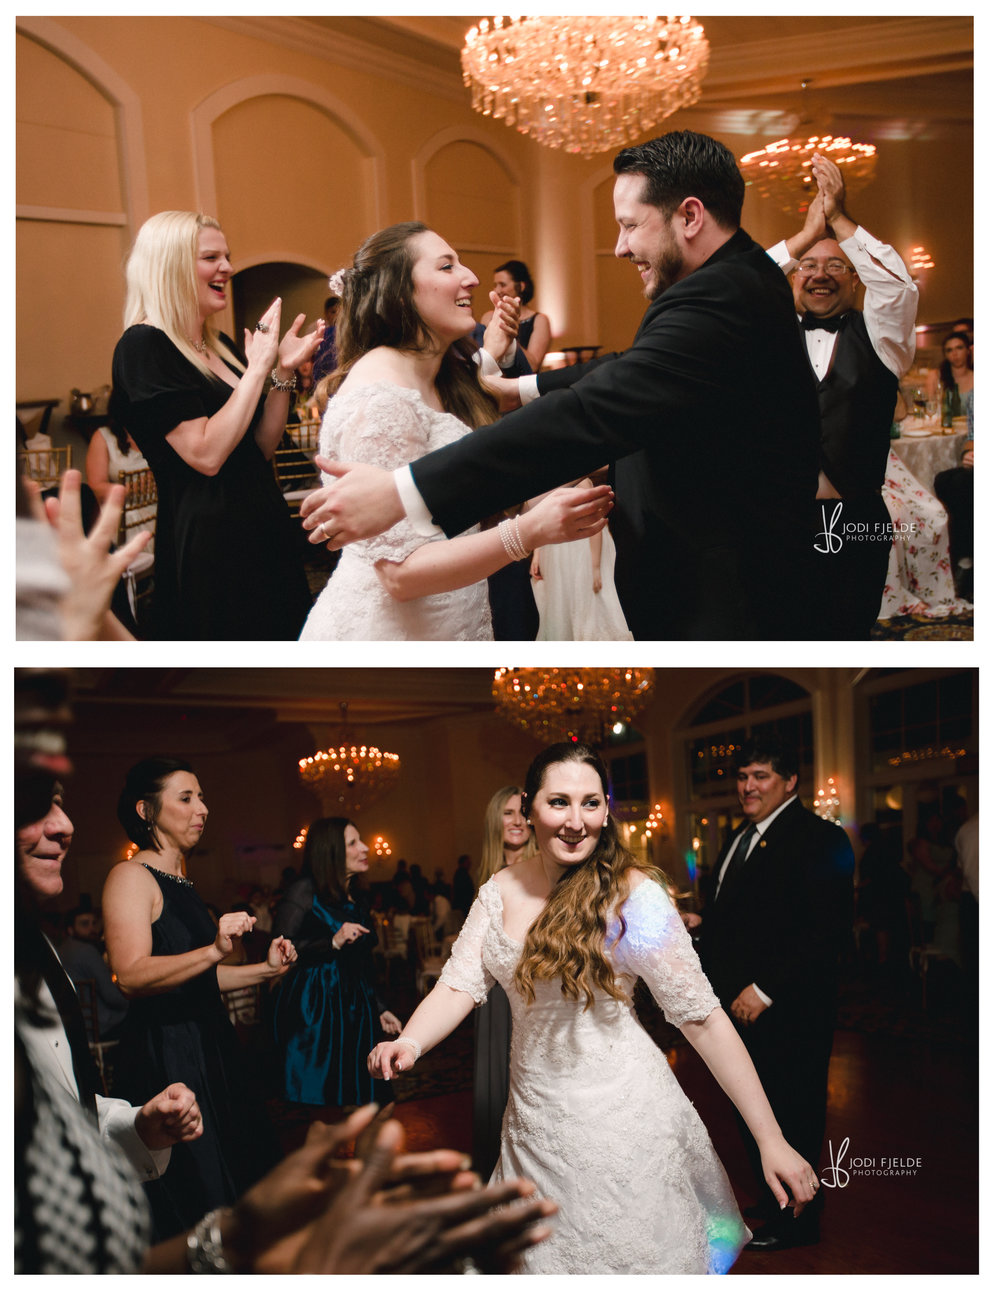 Deer_Creek_Country_Club_Wedding_Jodi_Fjelde_Photography_Andrea_Jason_25.jpg